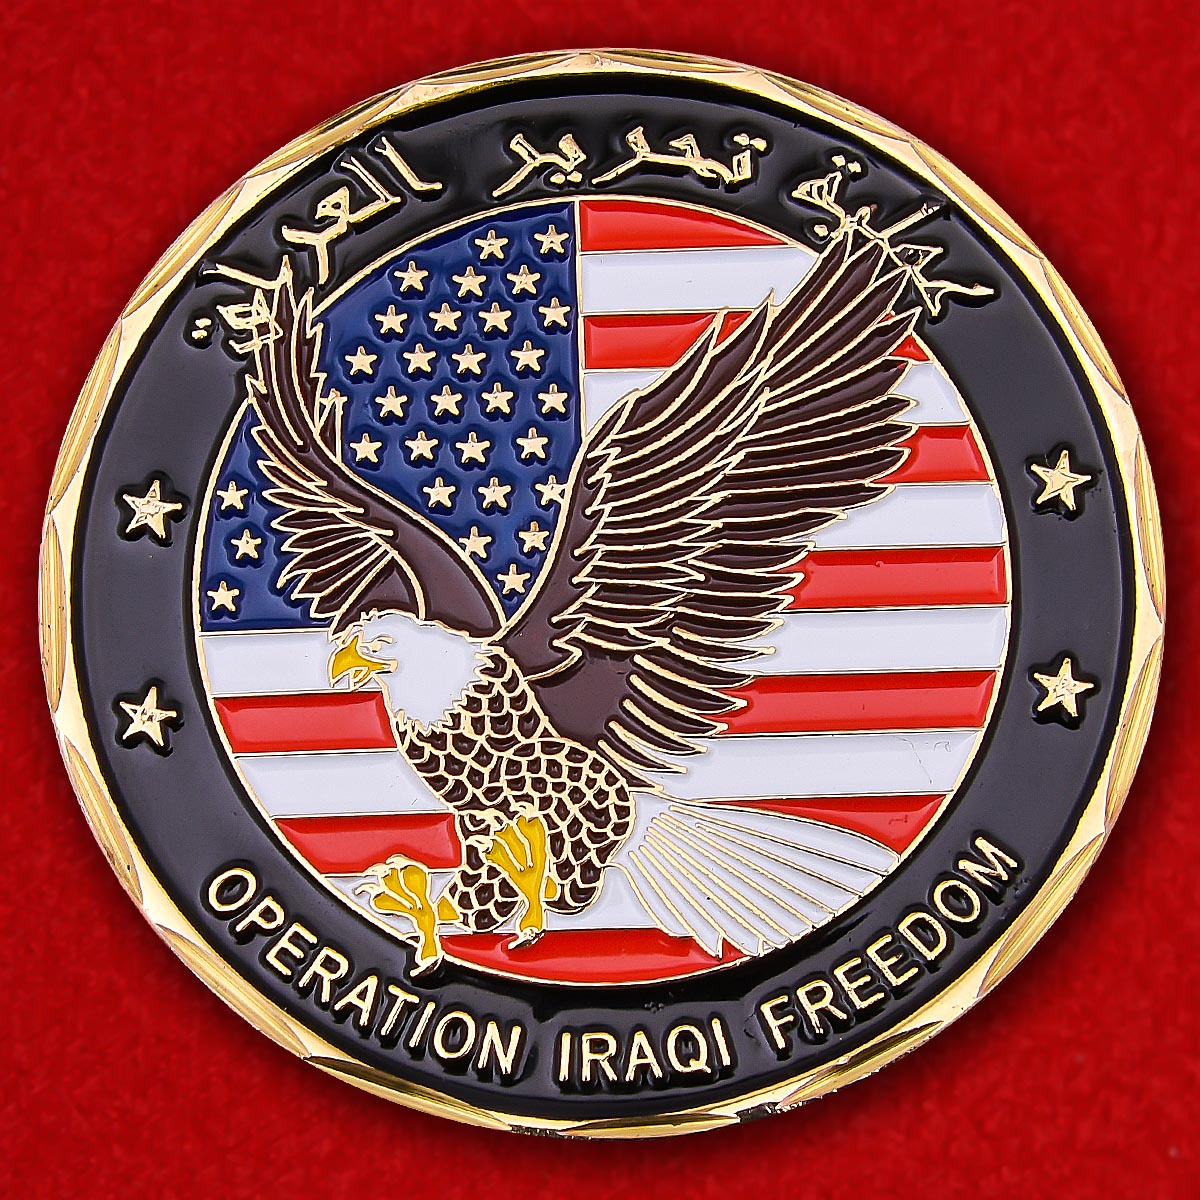 US Air Force Operation Iraqi Freedom Challenge Coin